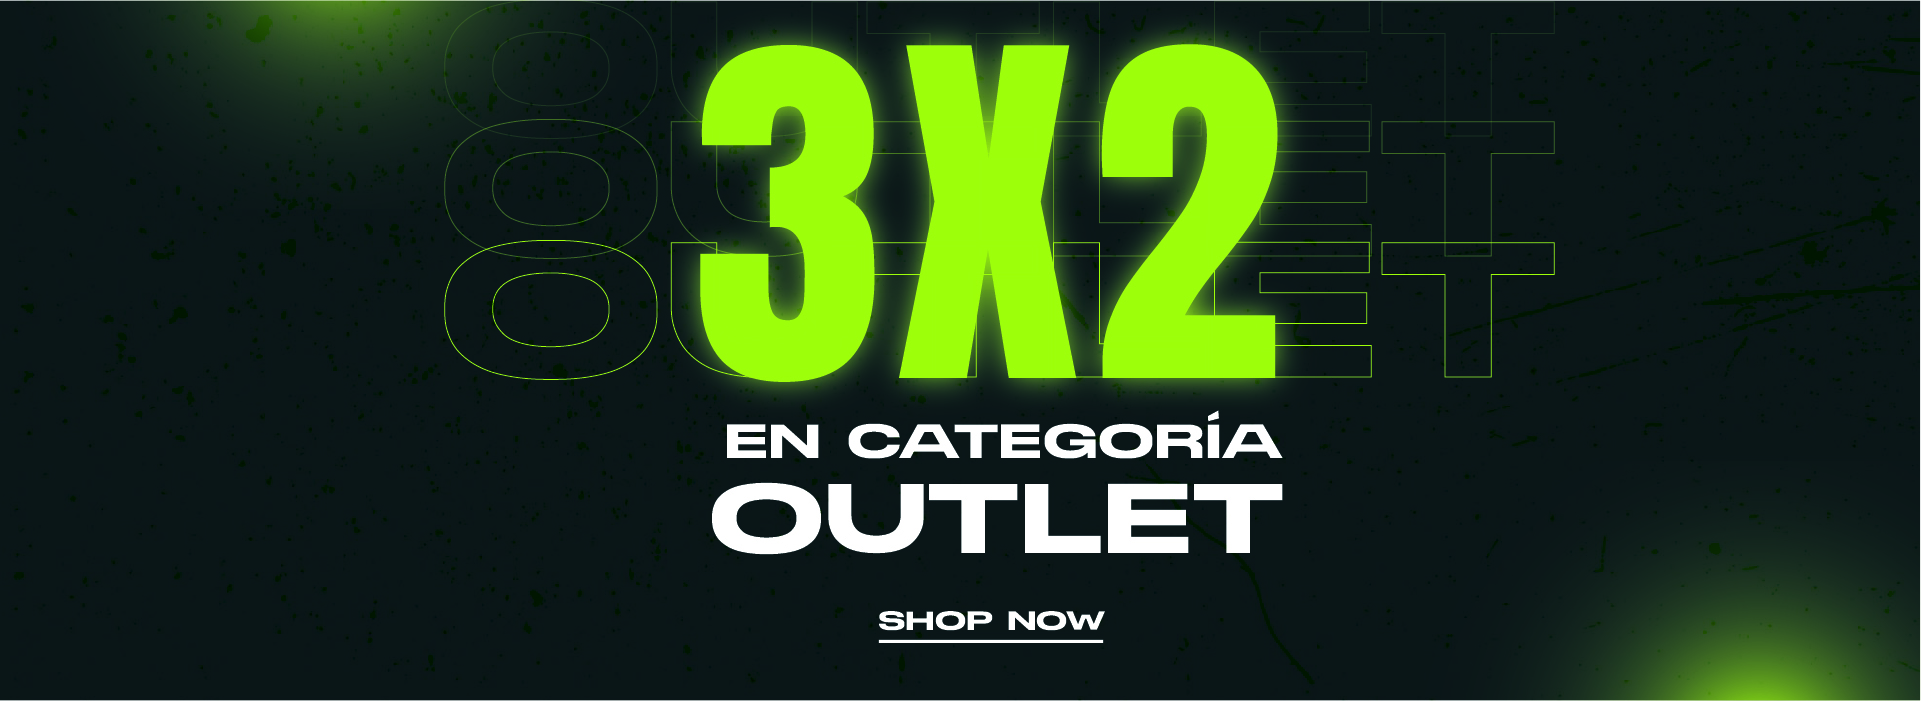 3x2outlet